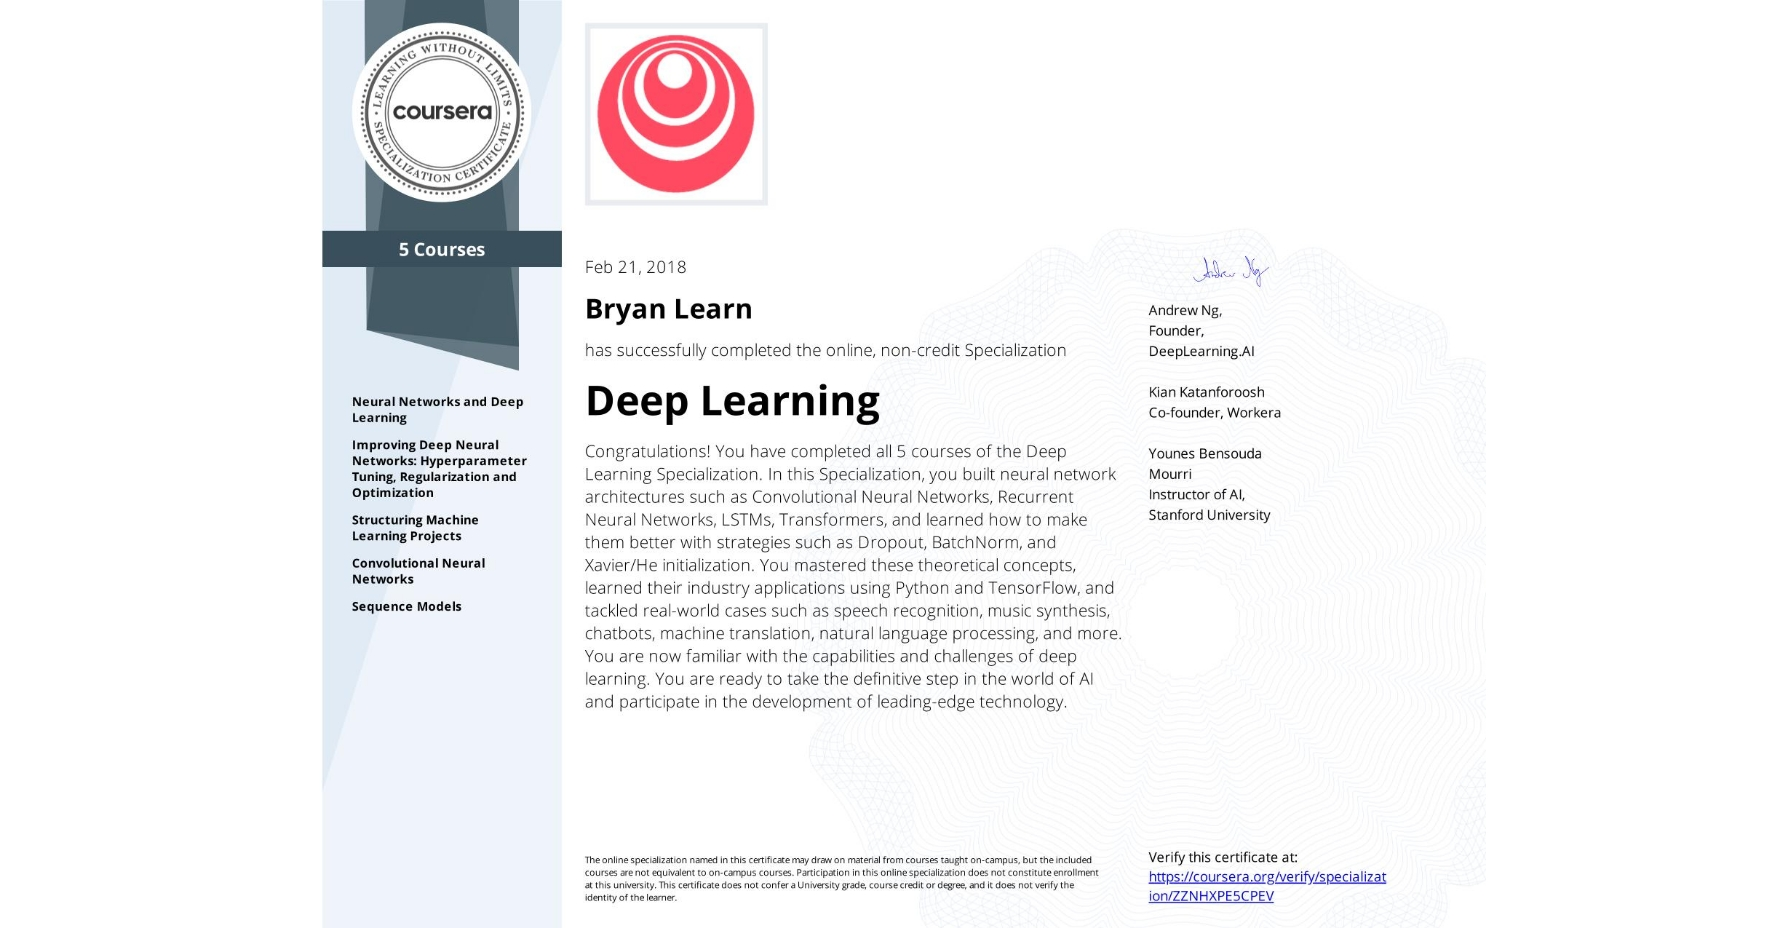 View certificate for Bryan Learn, Deep Learning, offered through Coursera. The Deep Learning Specialization is designed to prepare learners to participate in the development of cutting-edge AI technology, and to understand the capability, the challenges, and the consequences of the rise of deep learning. Through five interconnected courses, learners develop a profound knowledge of the hottest AI algorithms, mastering deep learning from its foundations (neural networks) to its industry applications (Computer Vision, Natural Language Processing, Speech Recognition, etc.).